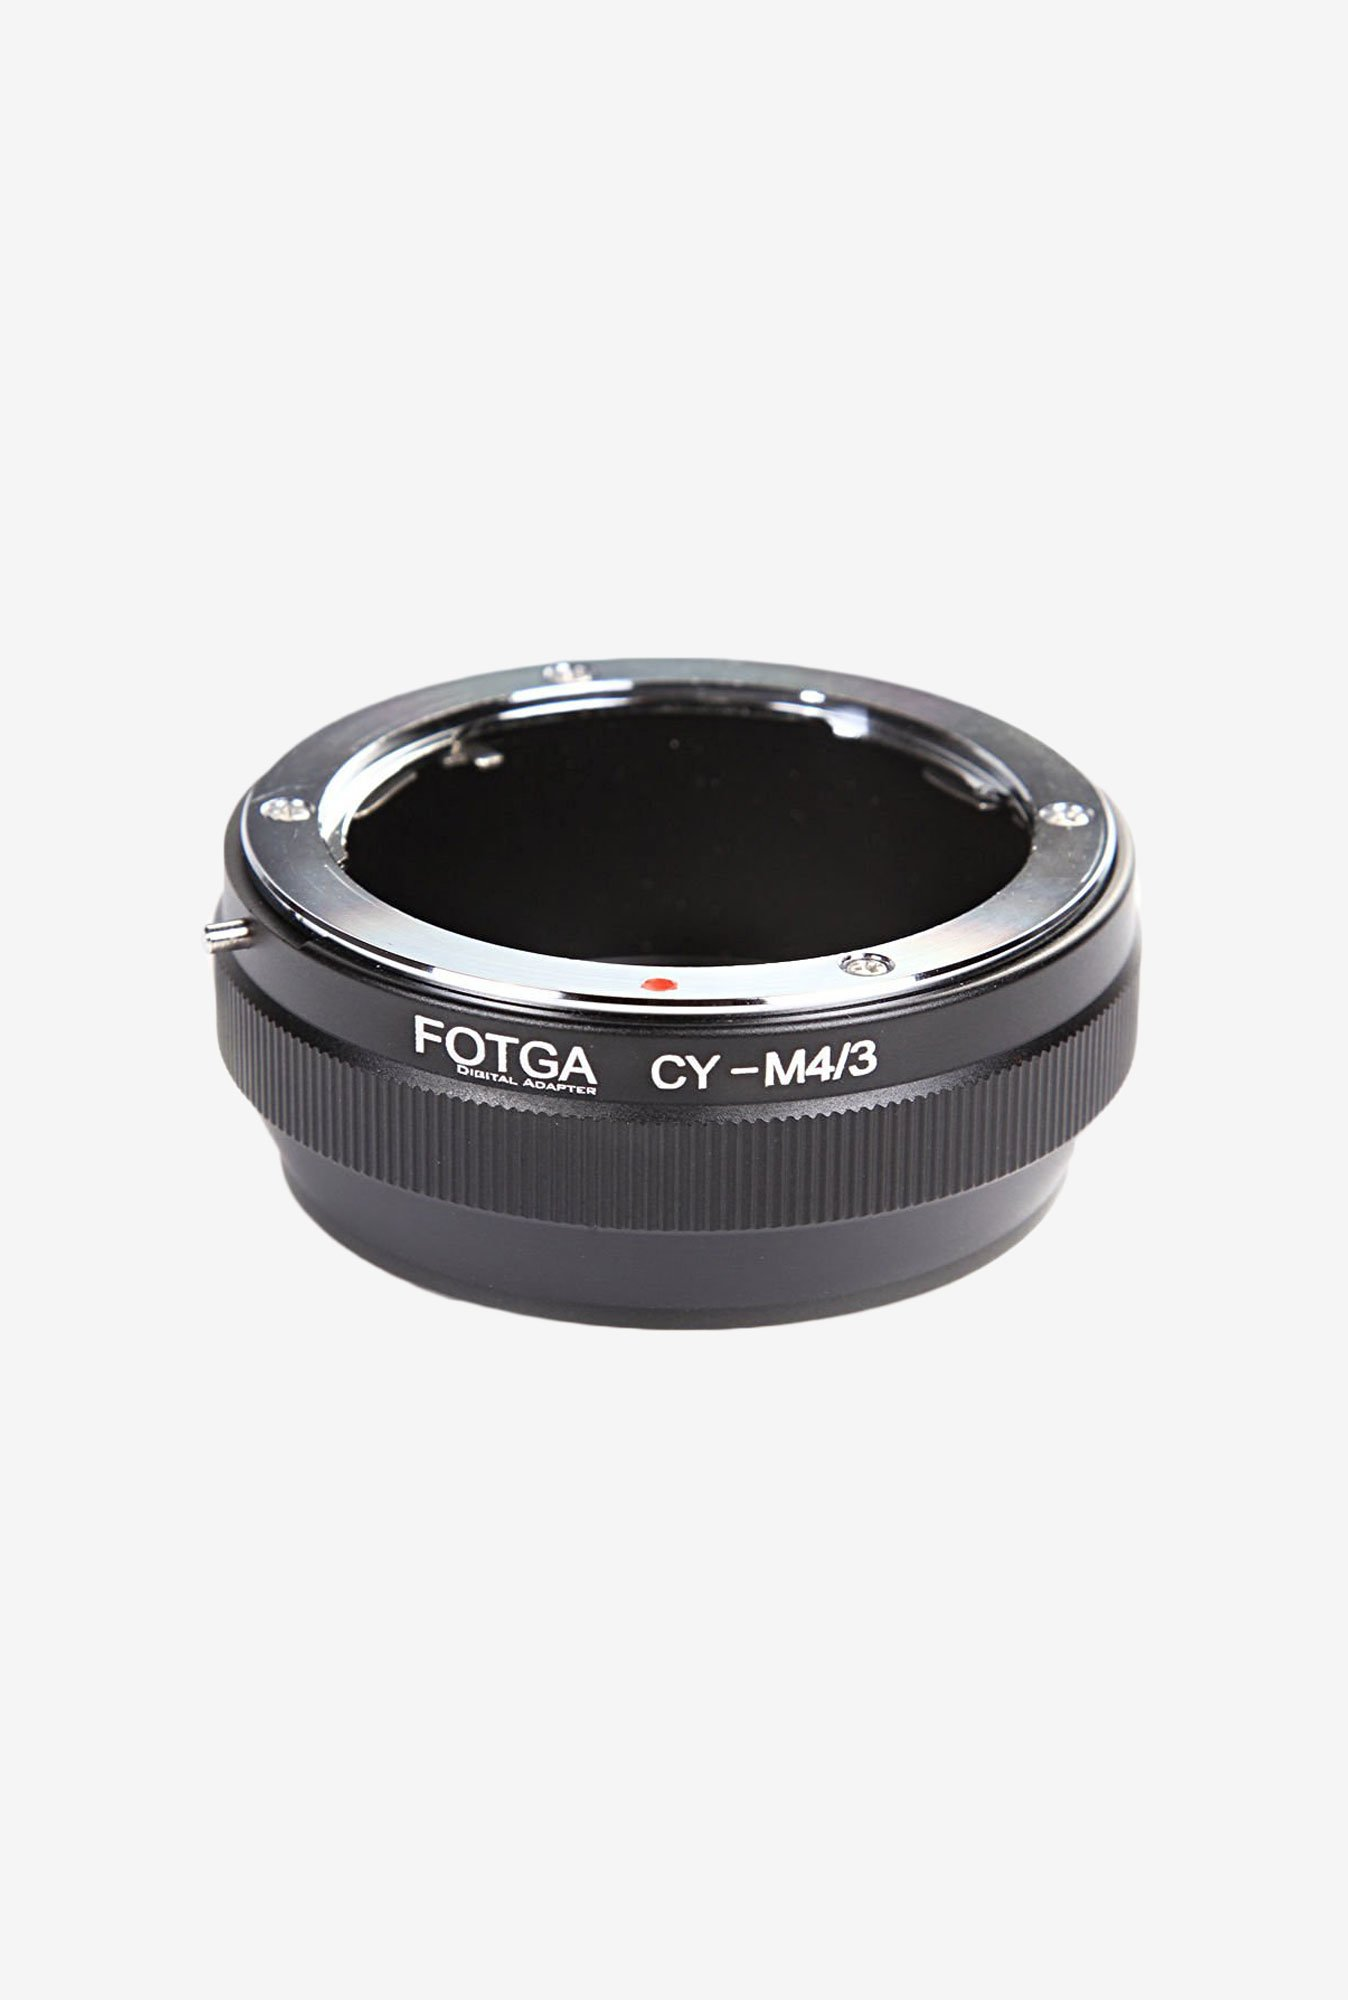 Fotga Contax C/Y CY lens to Micro 4/3 m43 Adapter Ring